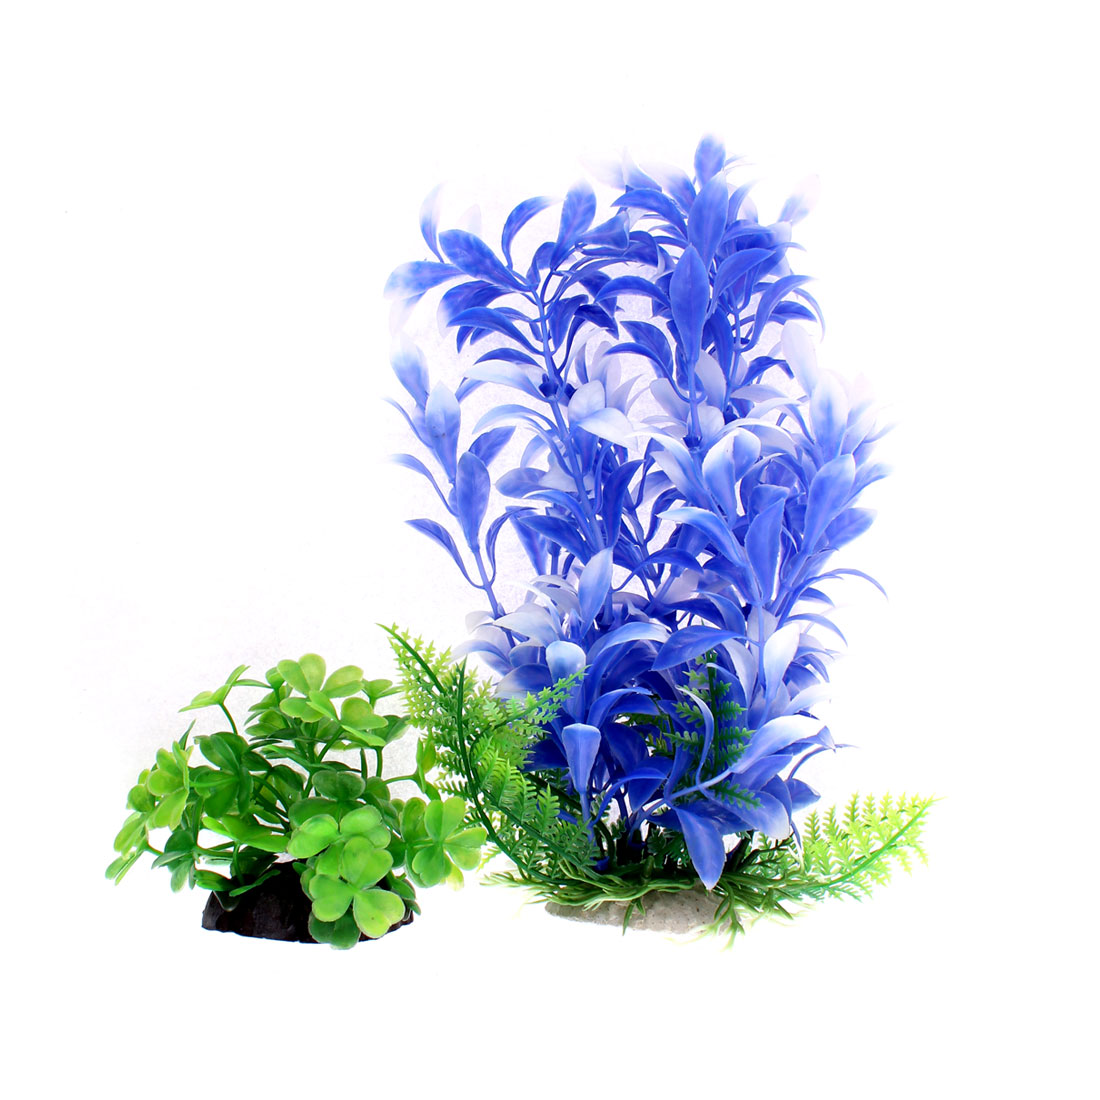 Aquarium Emulational Plastic Plants Decoration 2 in 1